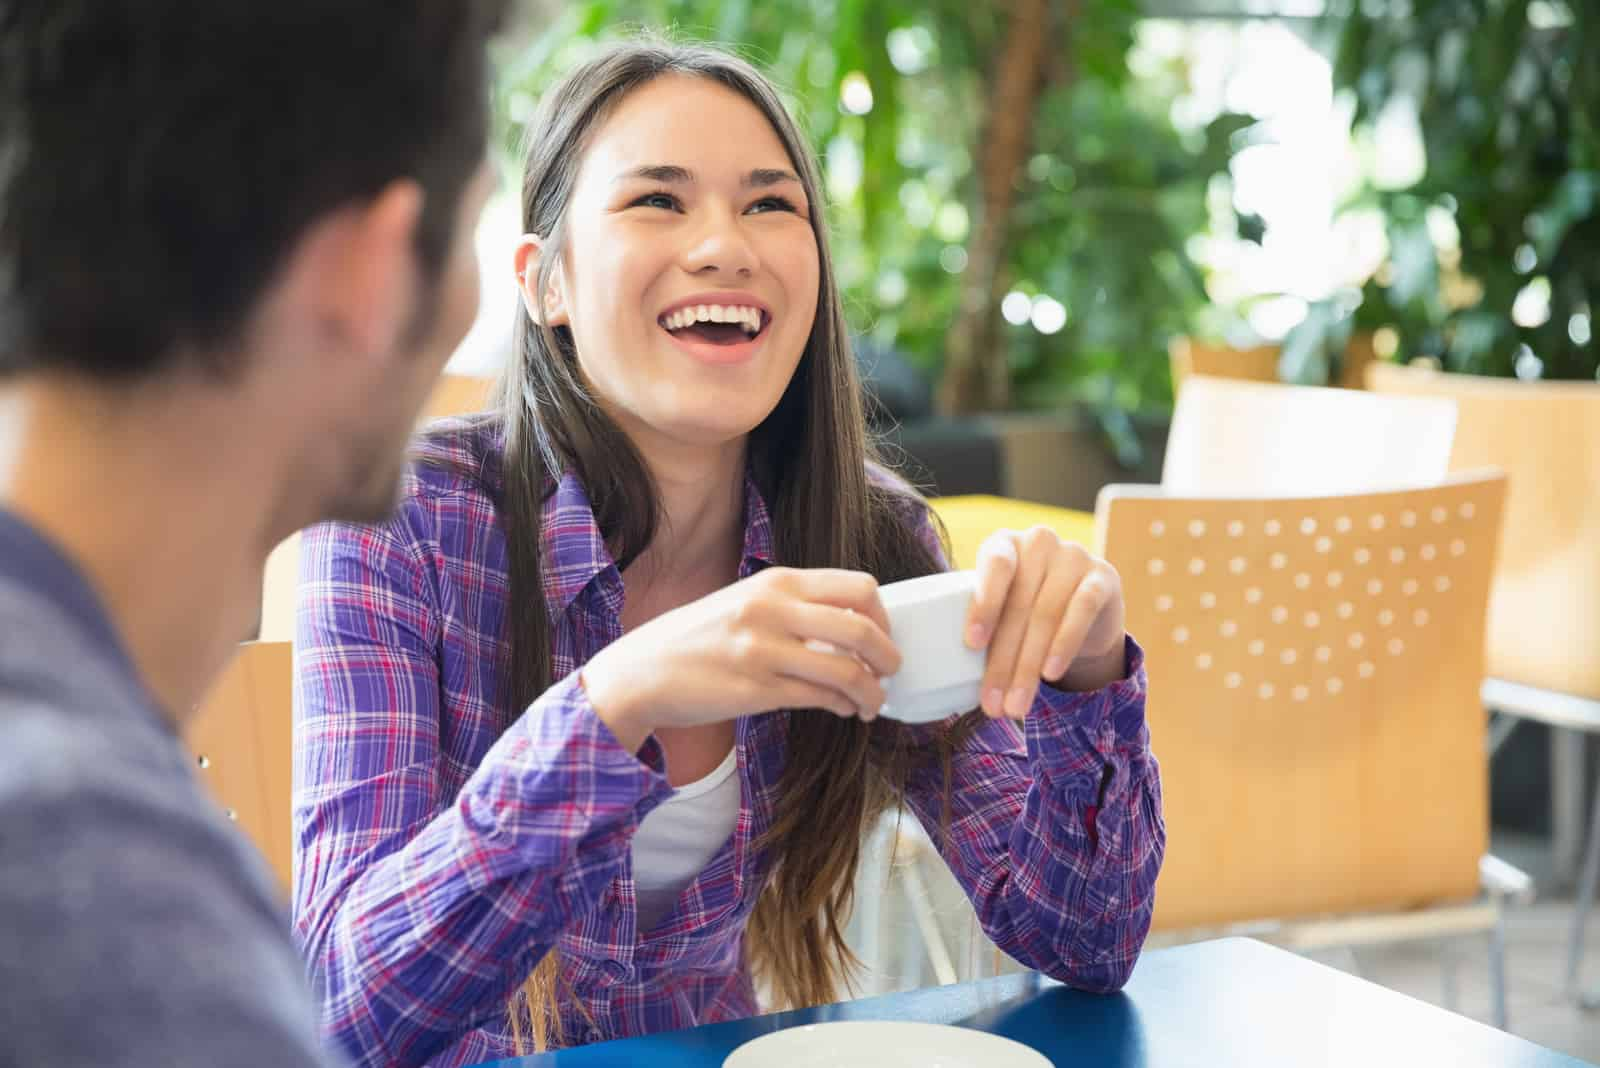 a smiling woman talking to a man while drinking coffee